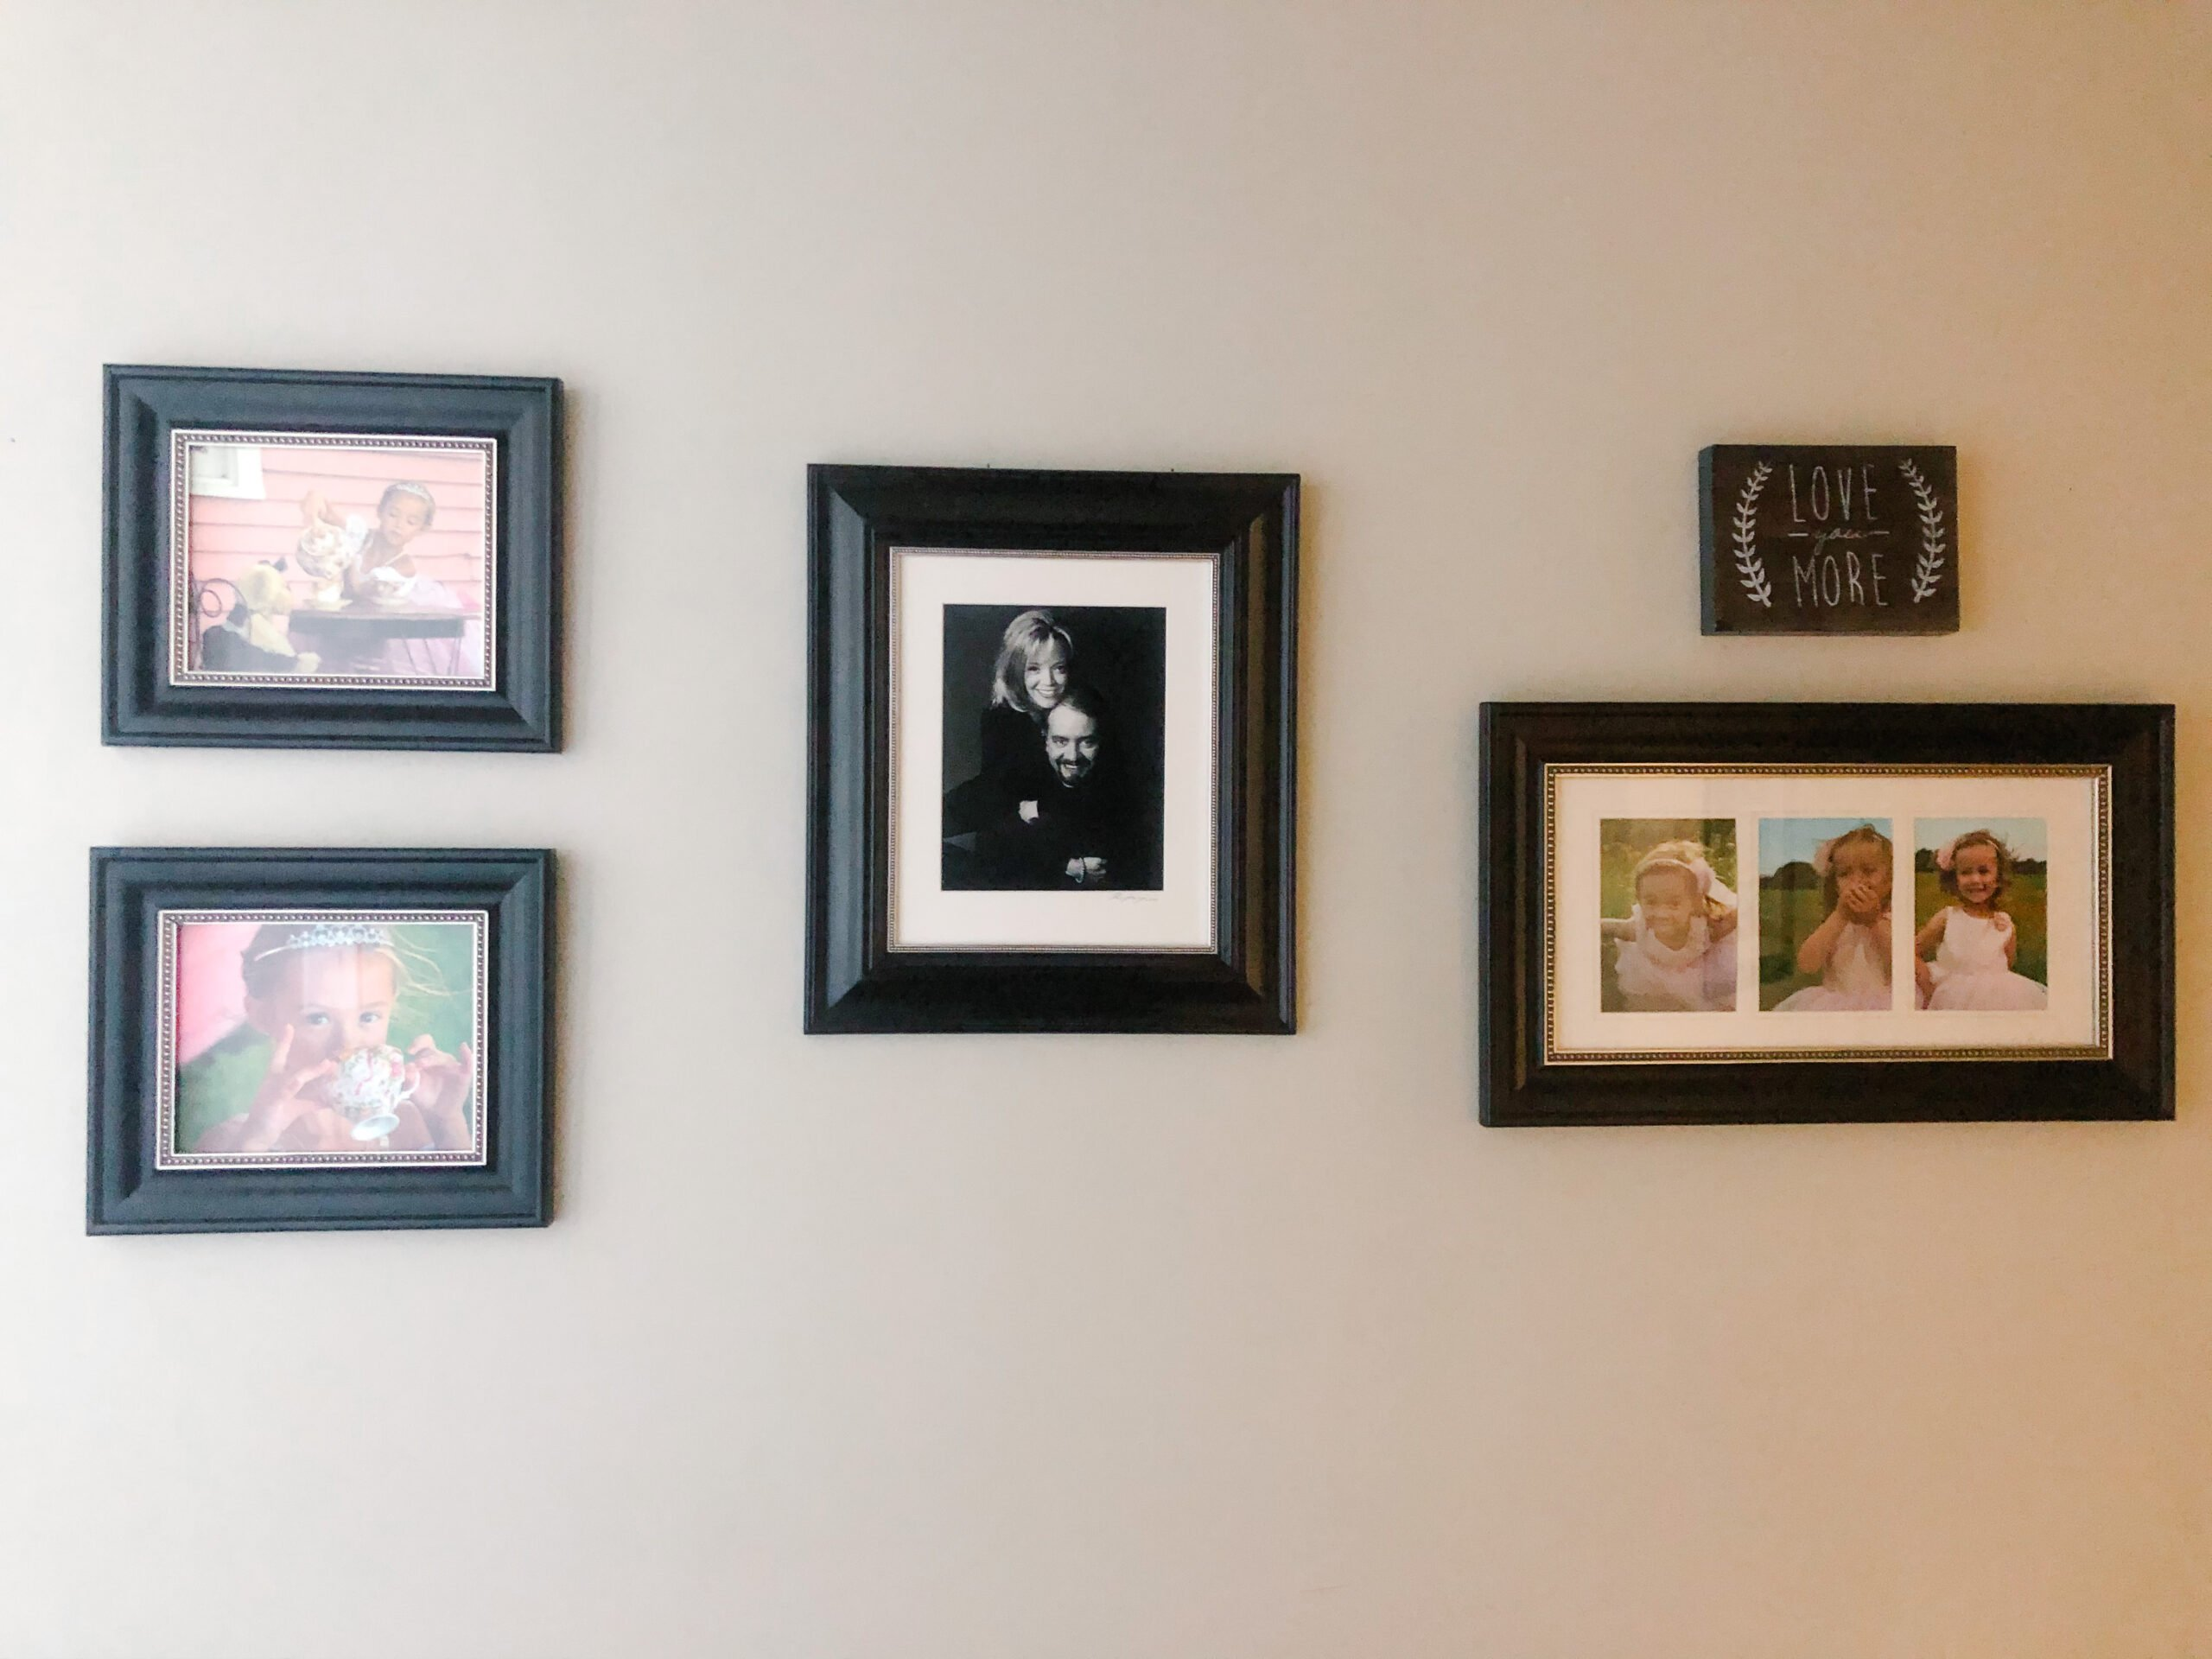 photo gallery wall - different sizes